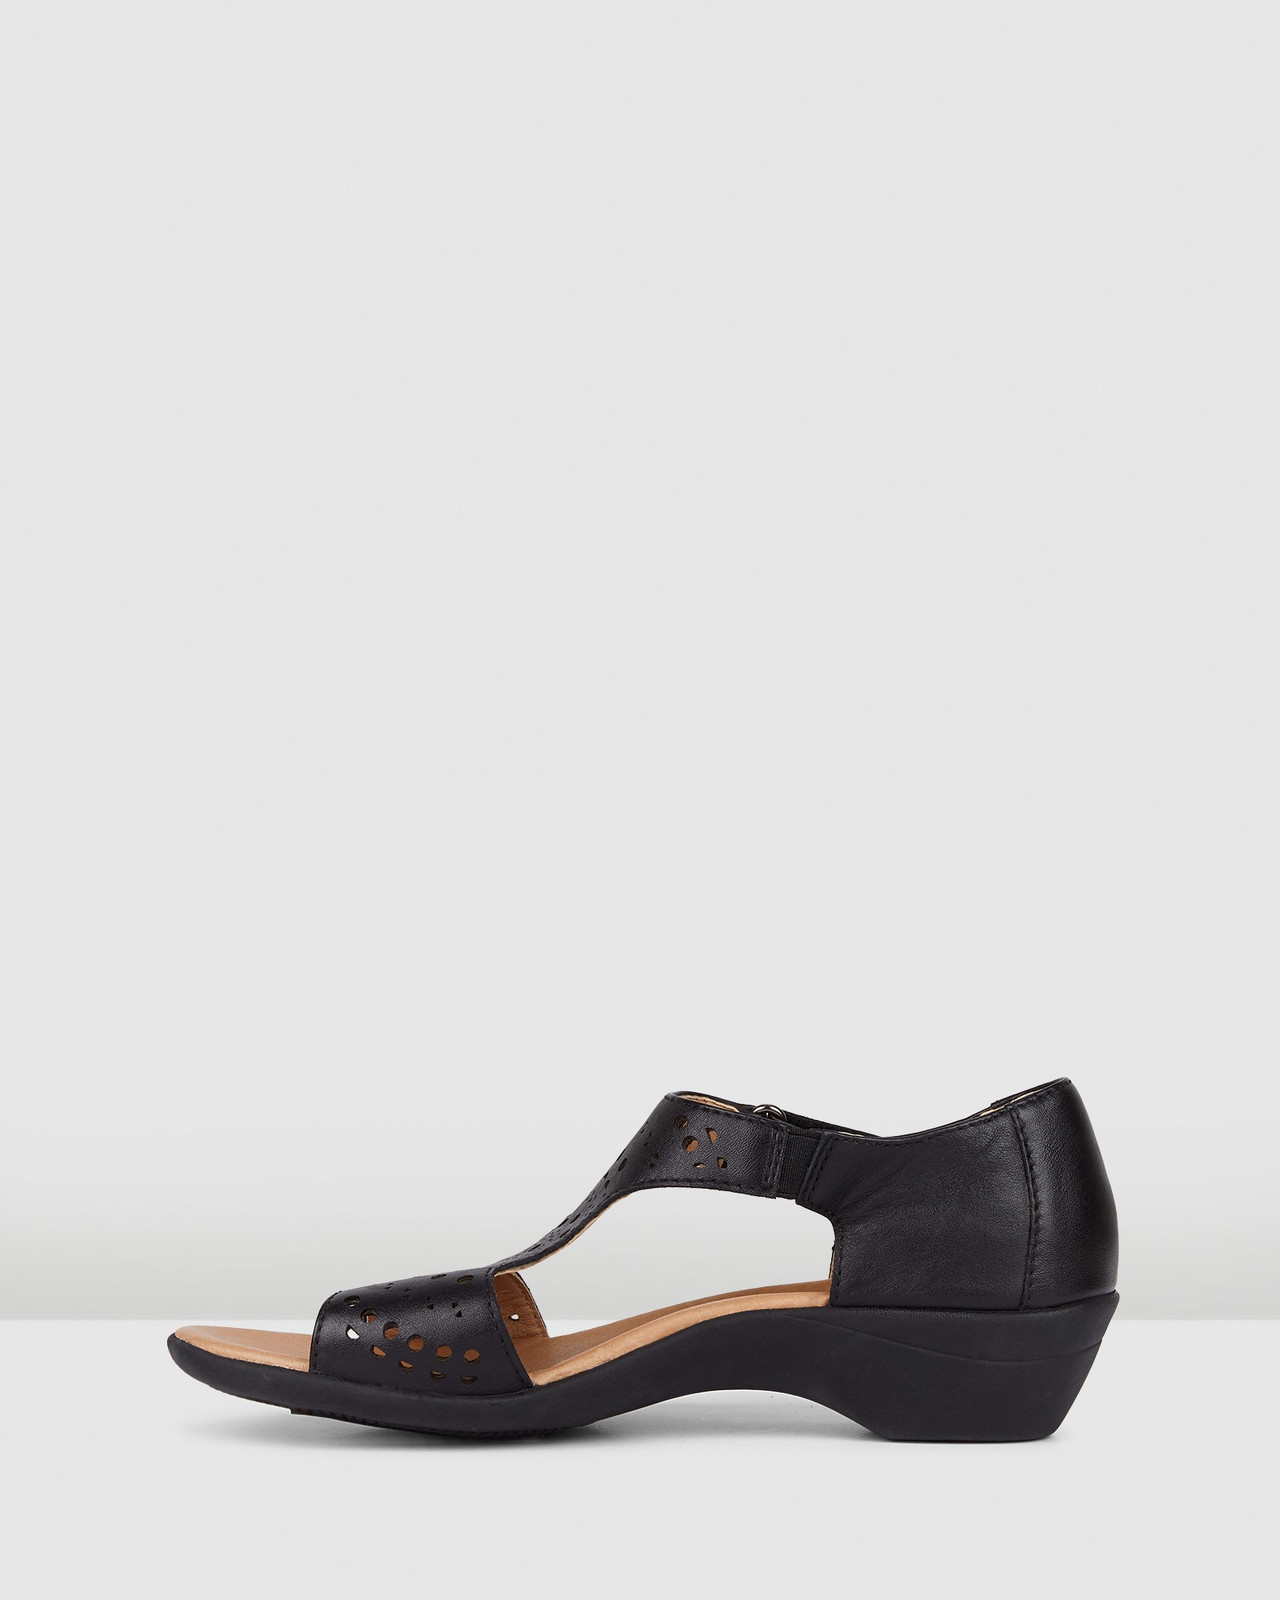 Hush Puppies  ASTER Black